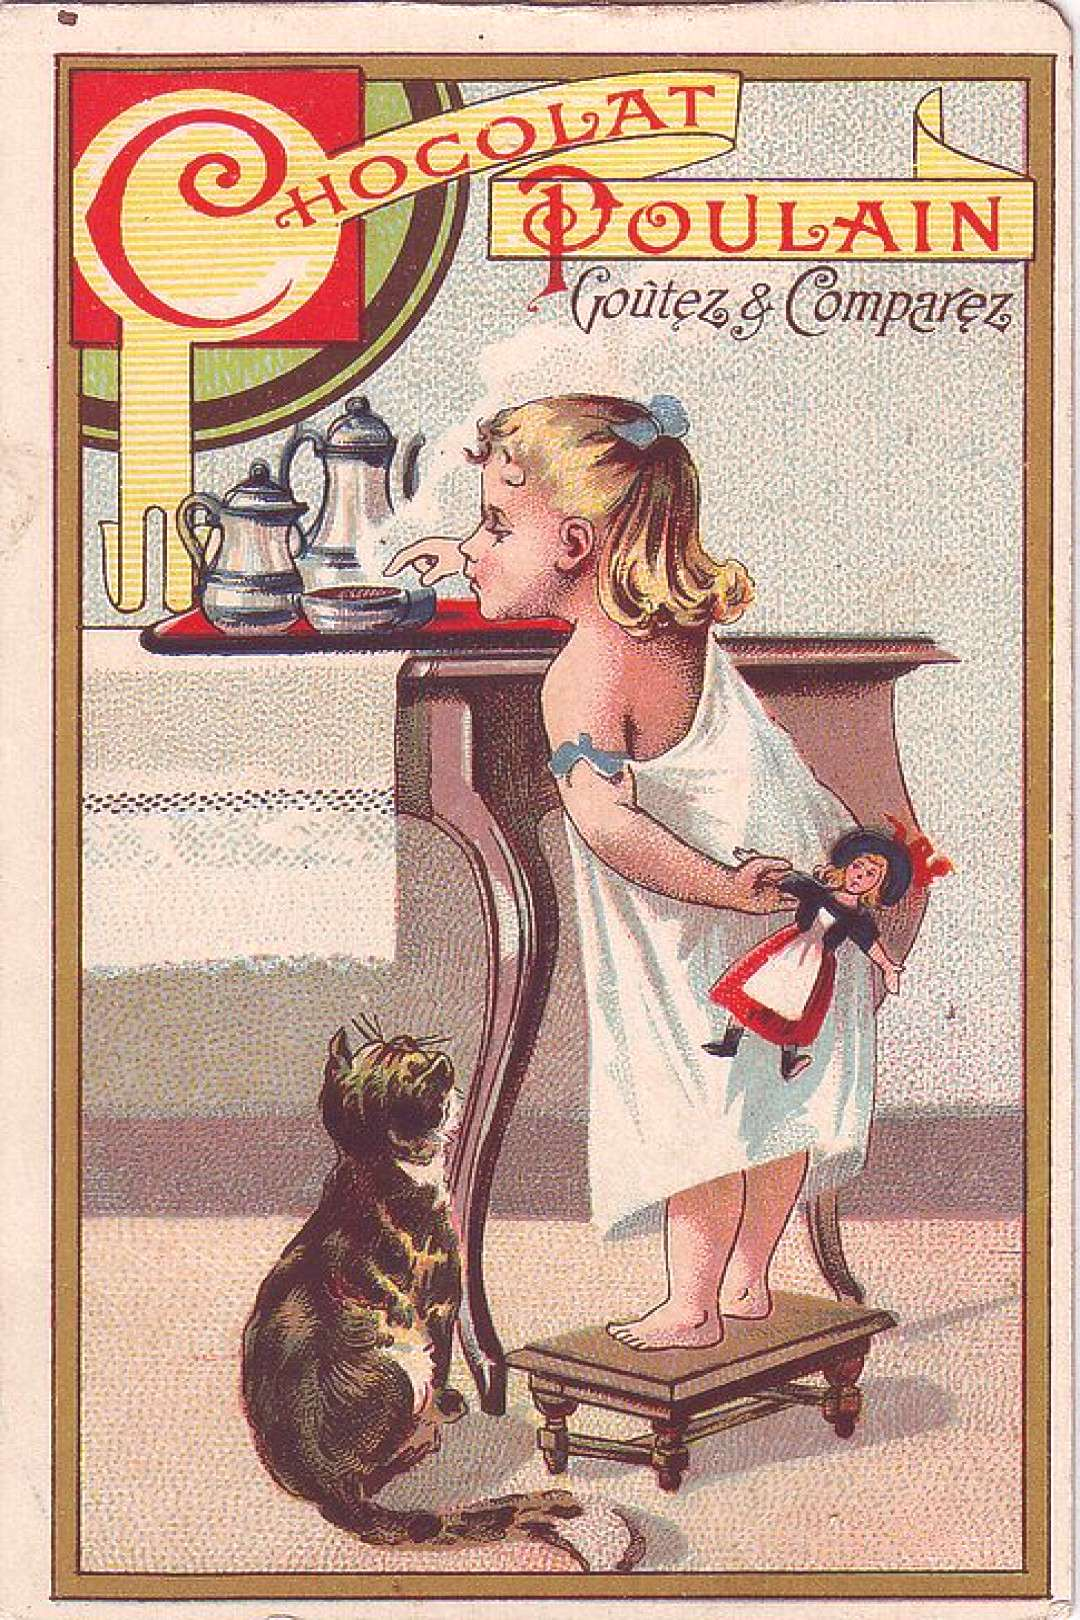 CHROMO CHOCOLAT POULAIN- GIRL ON SMALL STOOL REACHING FOR A BOWL OF CHOCOLATE WATCHED BY CAT - HERO